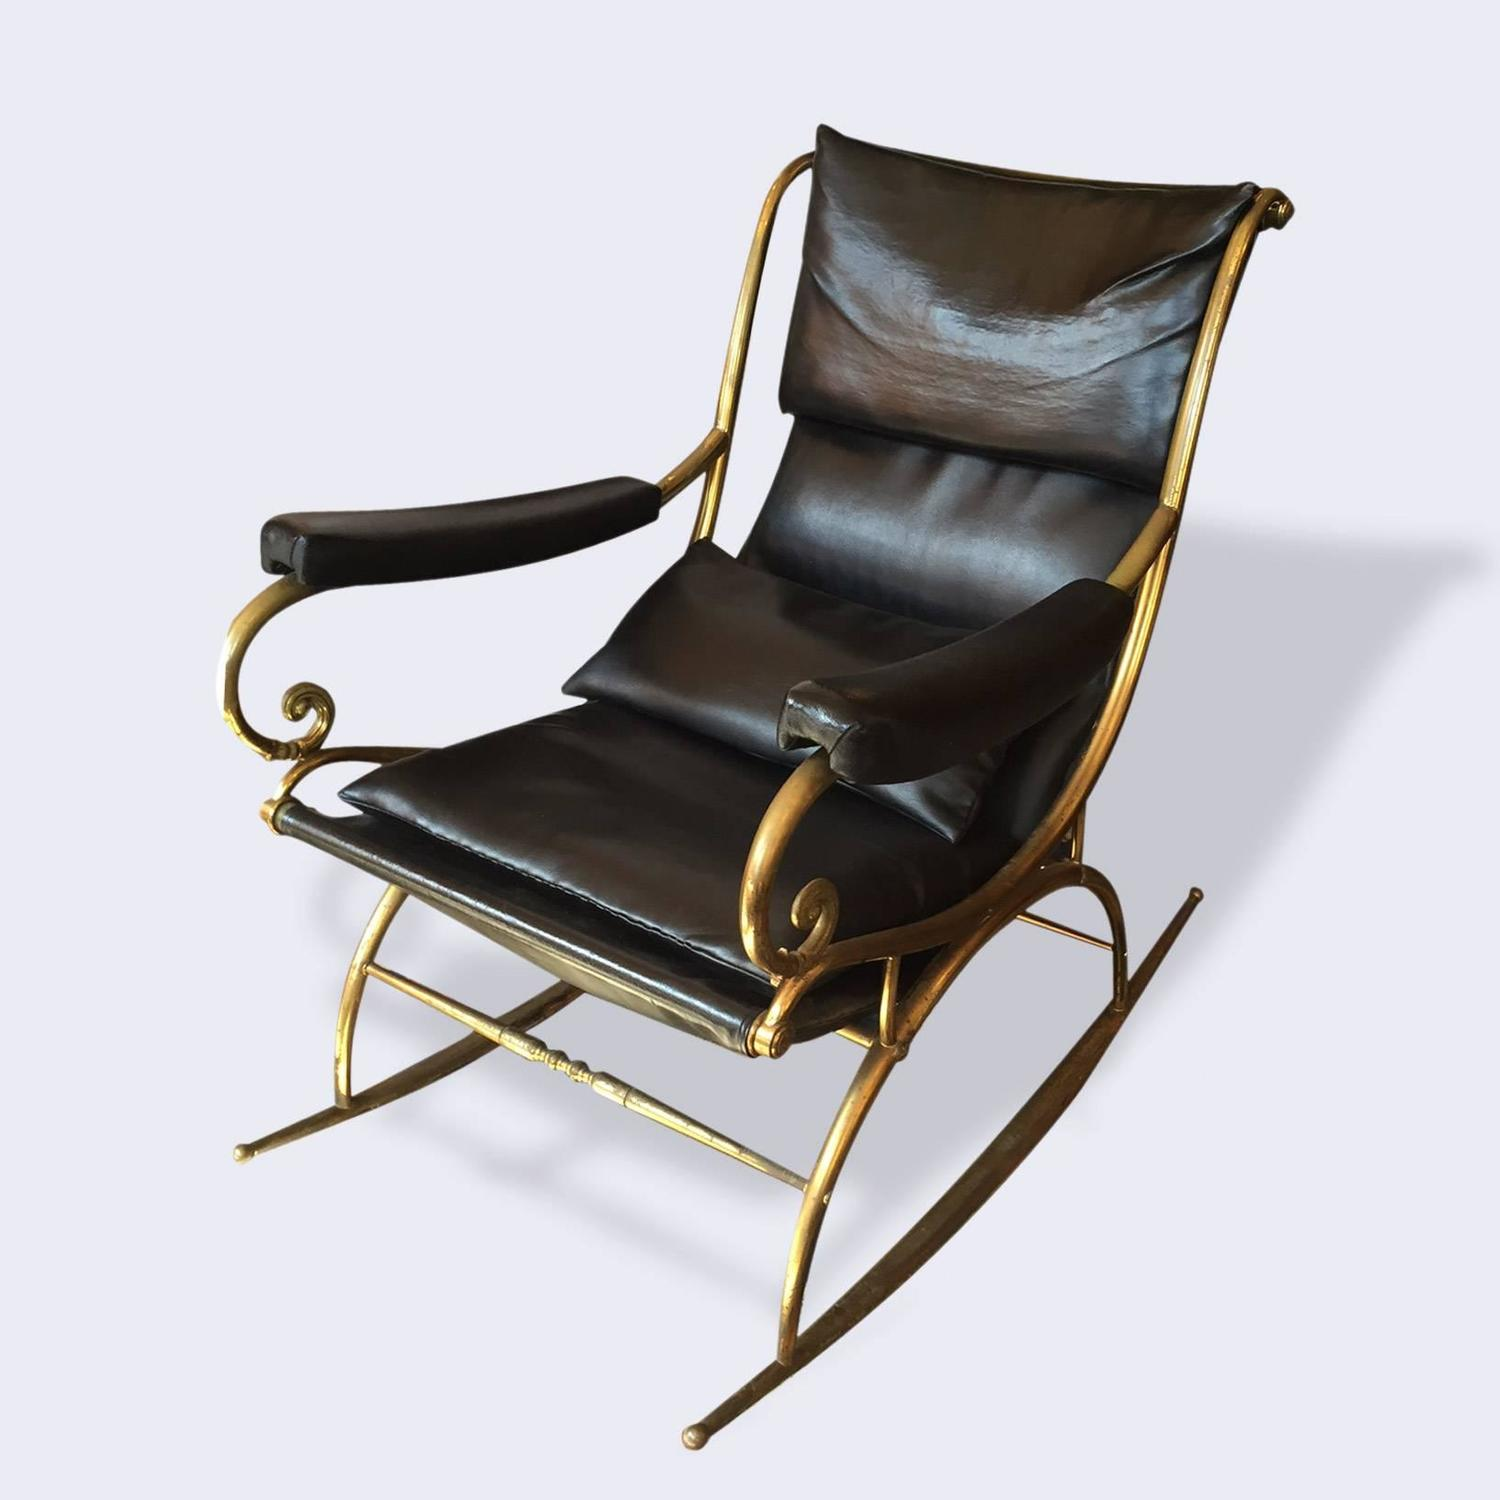 Rockin Chair Very Rare 19th Century Brass Rocking Chair With Minimal